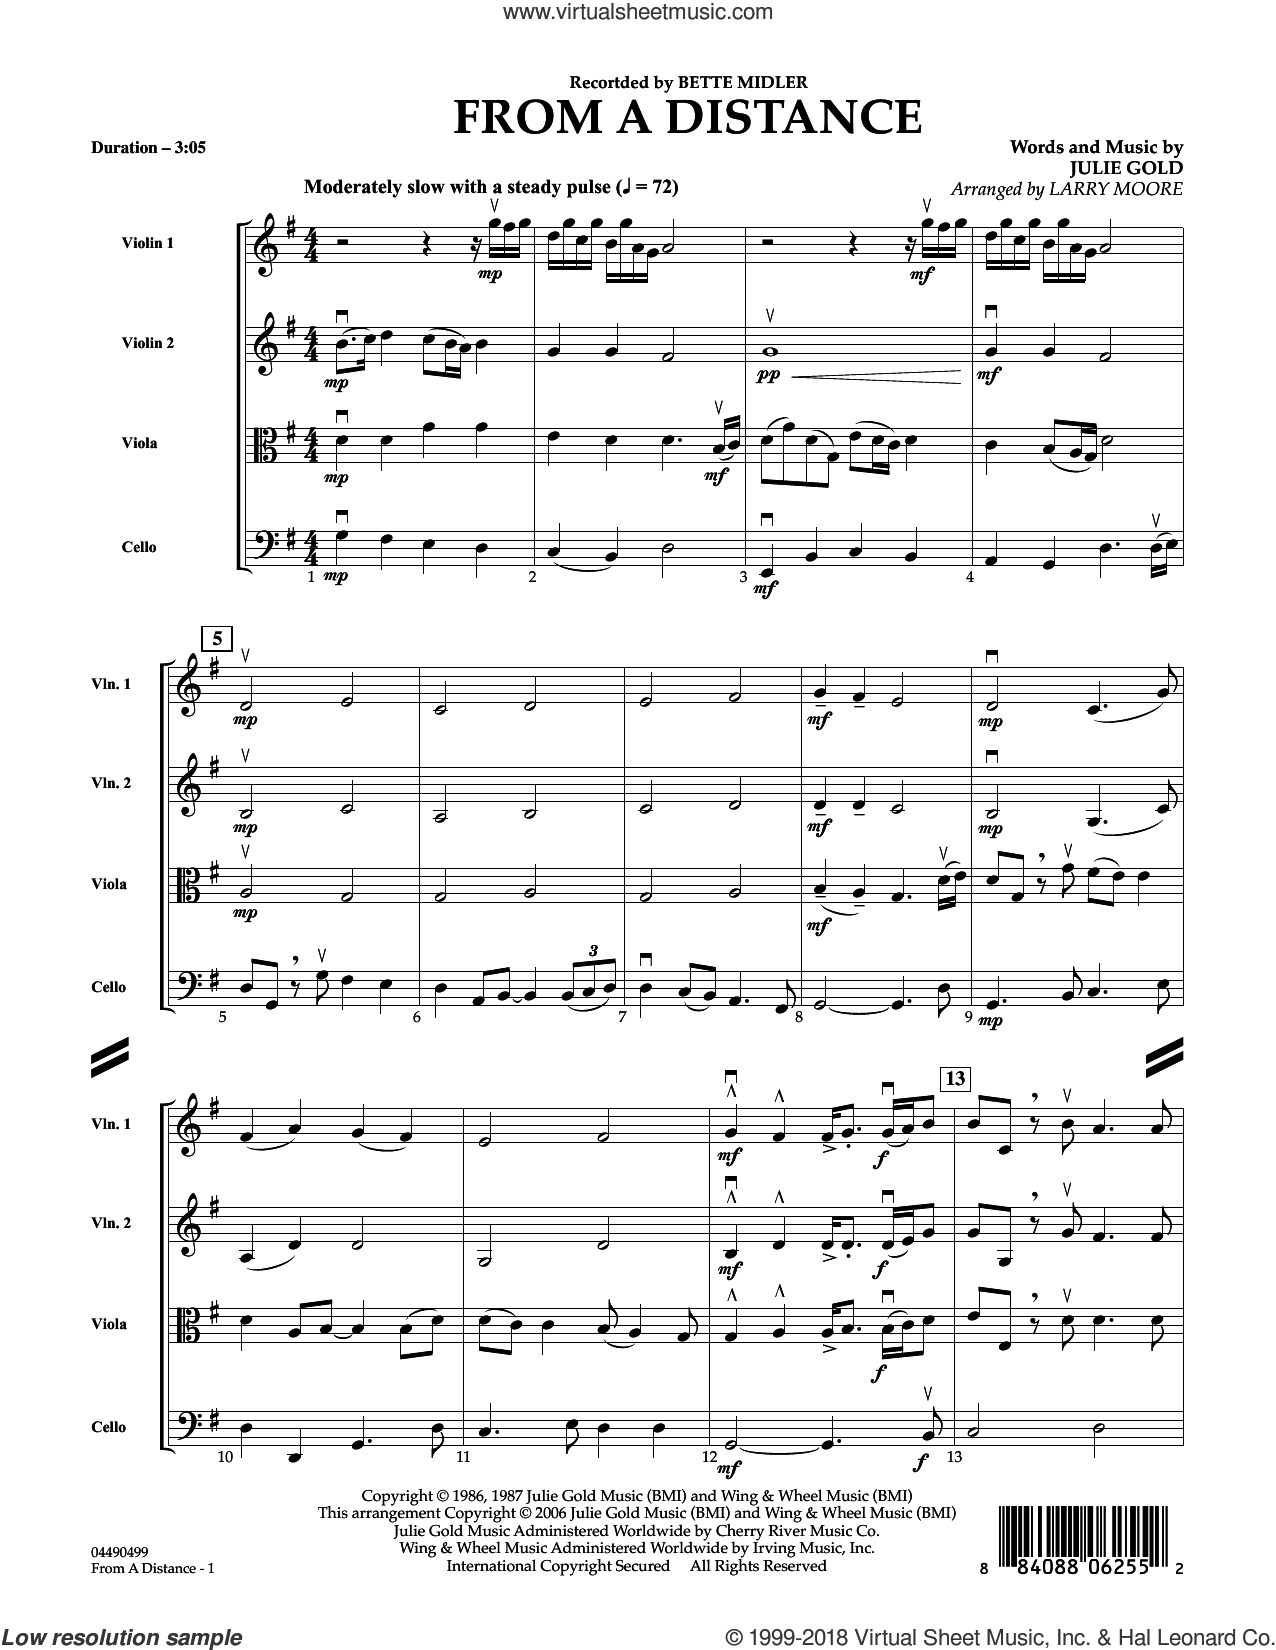 From a Distance (arr. Larry Moore) (COMPLETE) sheet music for string quartet (Strings) by Bette Midler, Julie Gold and Larry Moore, intermediate orchestra